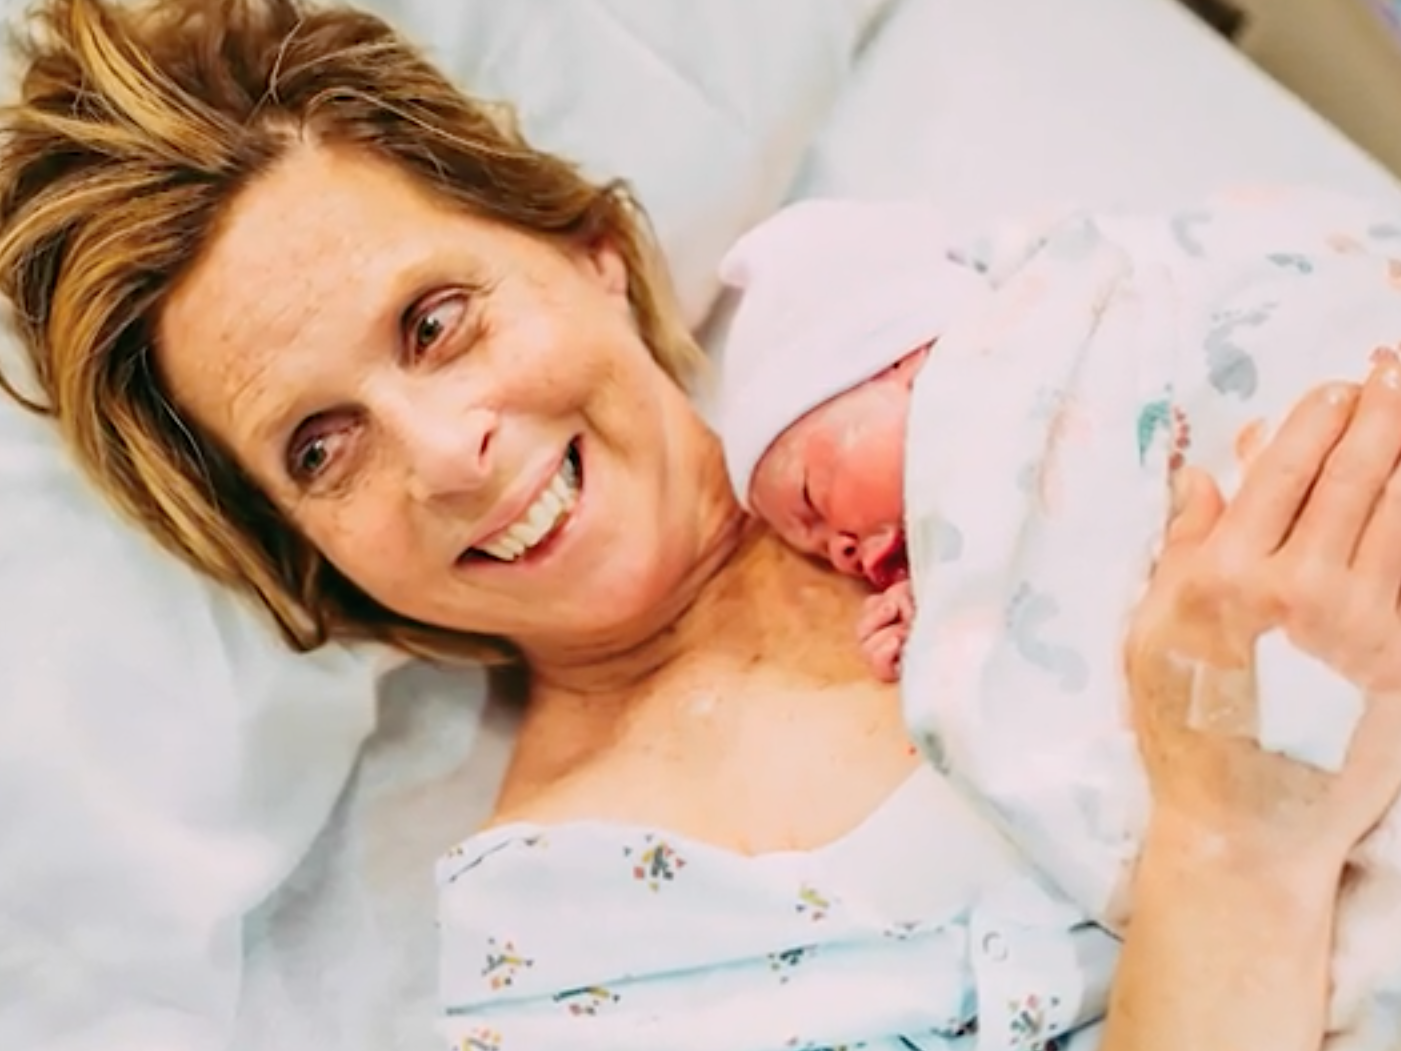 Woman, 61, gives birth to own granddaughter